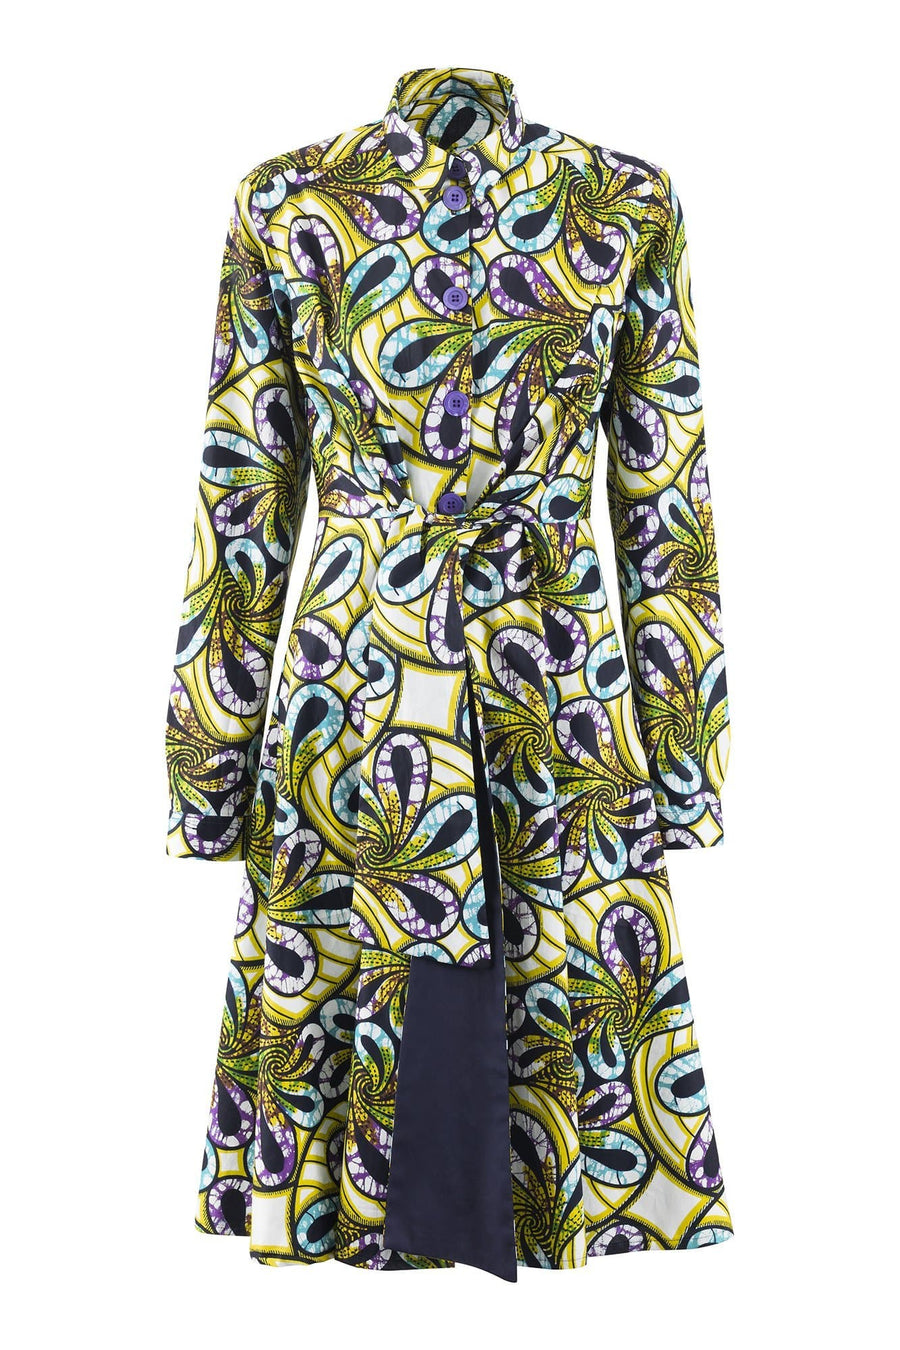 Elanga Green And Purple Floral Long Sleeves Tie Waist African Print Shirt Dress